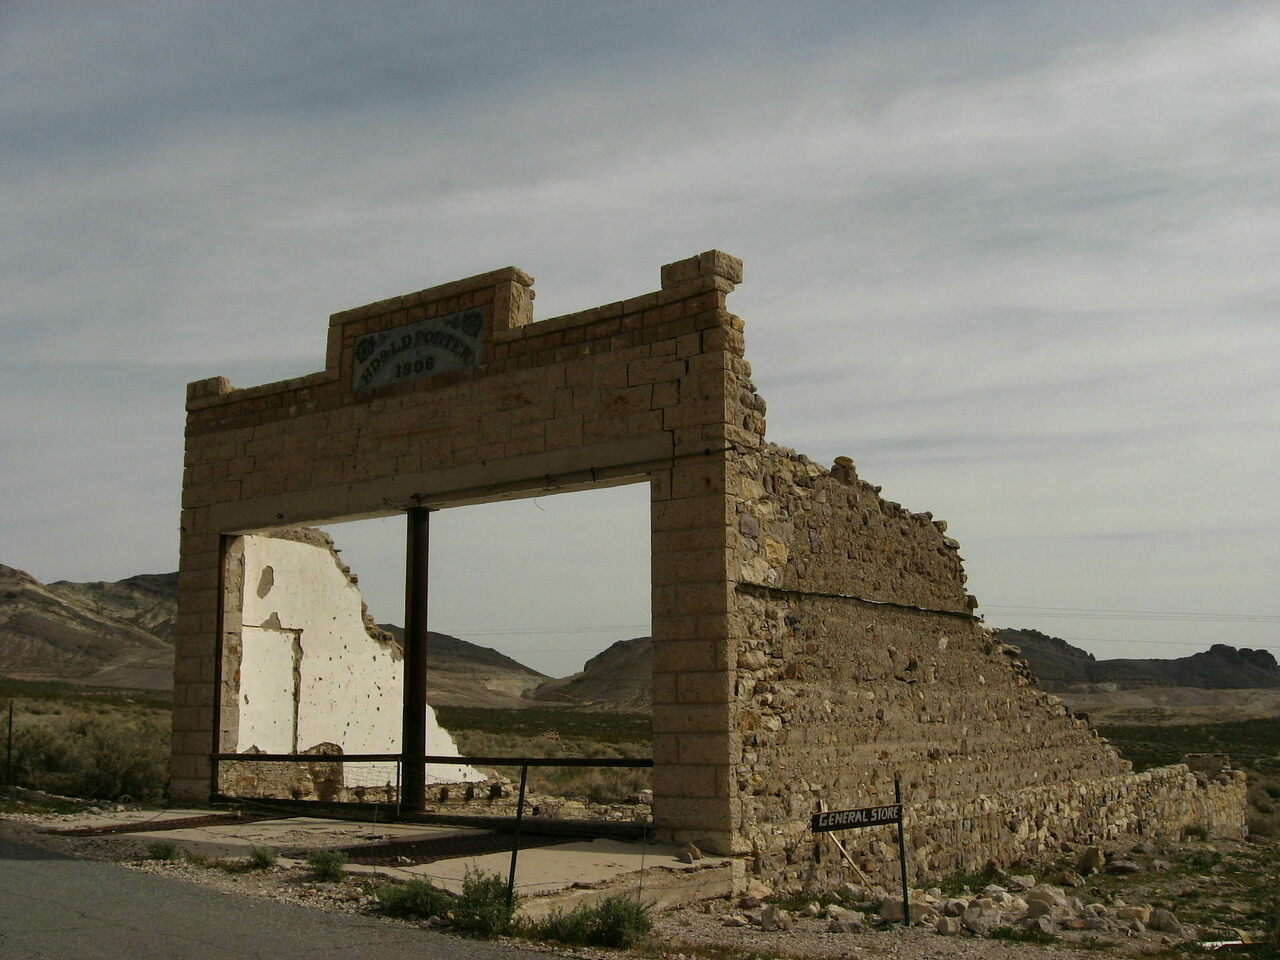 The ruins of a general store in Rhyolite, one of Nevada's better known ghost towns.